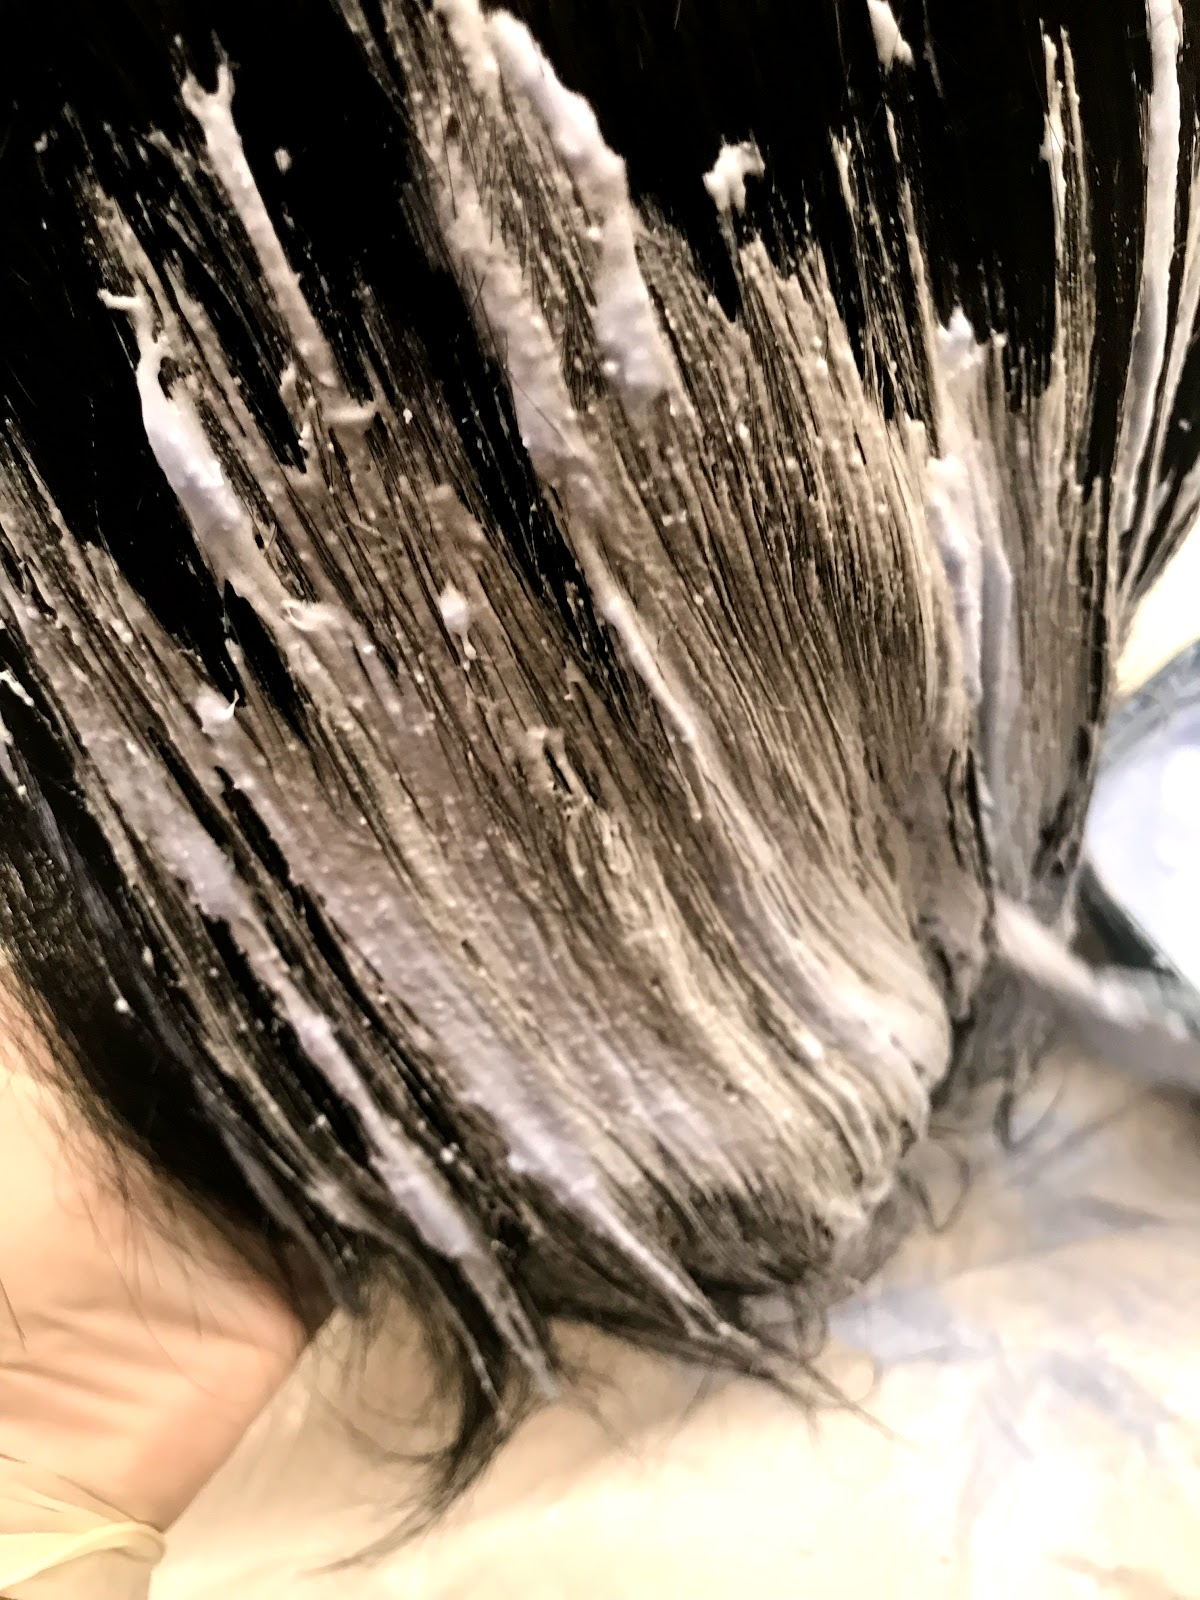 Image: Woman coloring hair: with joico blonde: I started at the bottom of my hair and proceeded upwards. Sidenote: As a stylist, I would not do this technique on a real human. I am coloring a wig, so I winged it which is wrong if I was doing for someone else.